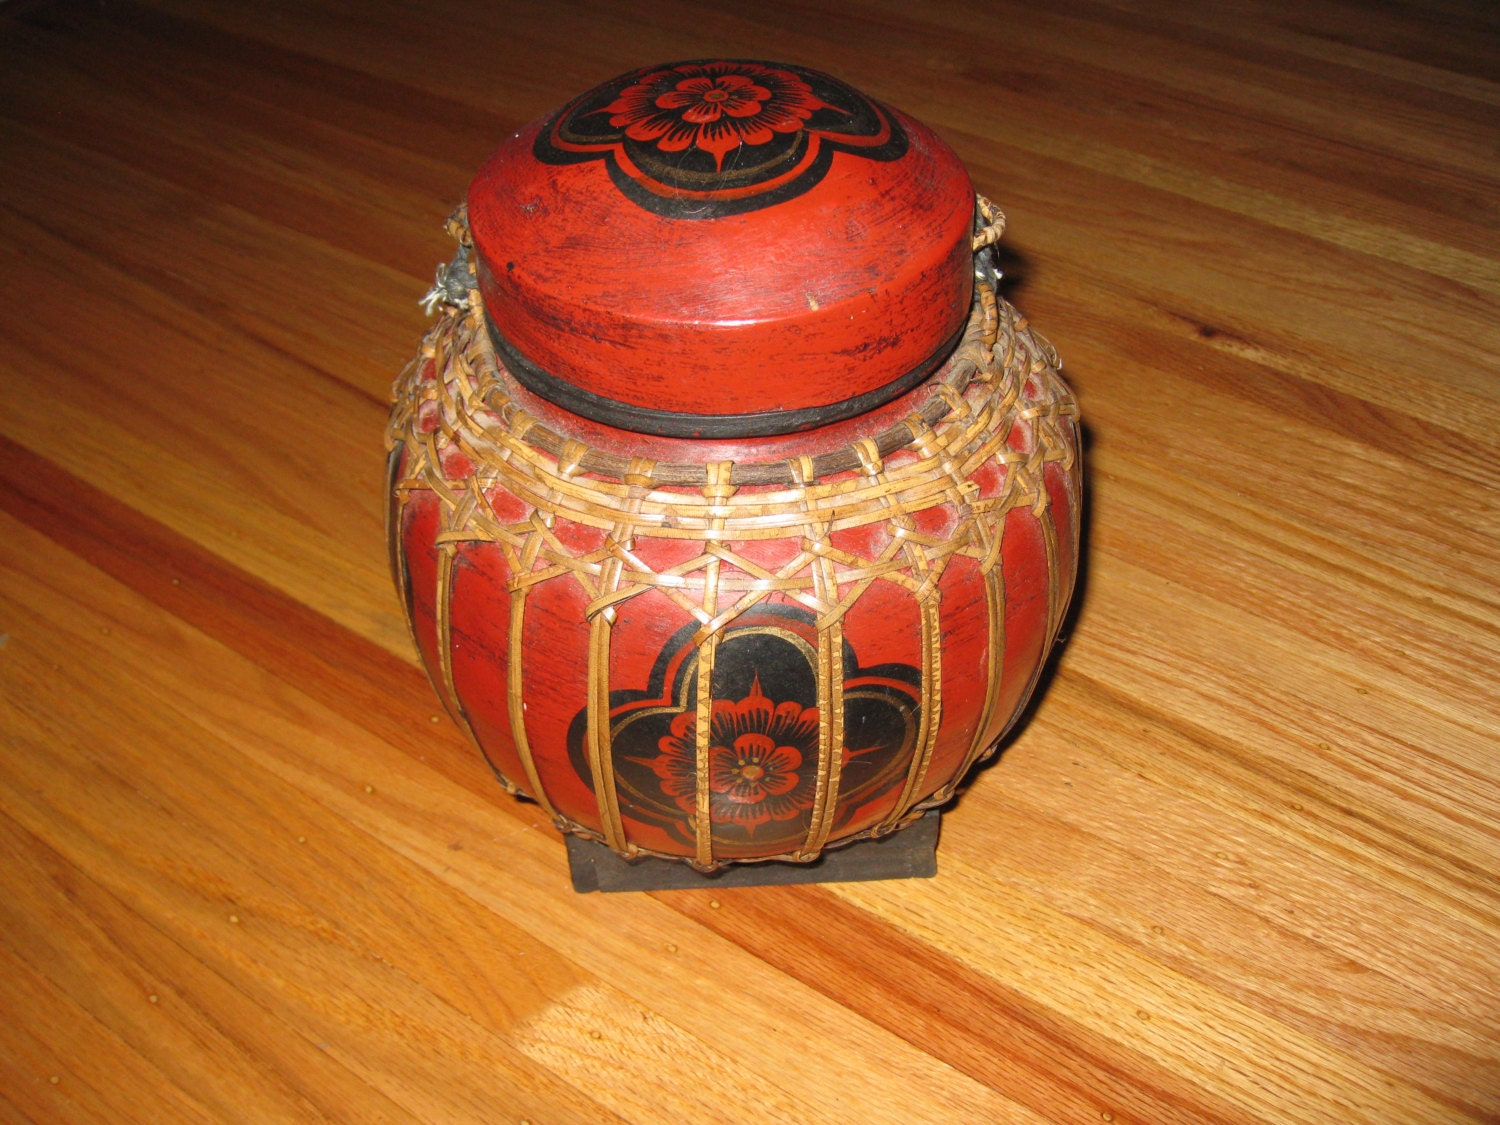 ANTIQUE THAILAND RICE Jar Pot Vessel Urn Red Container Made